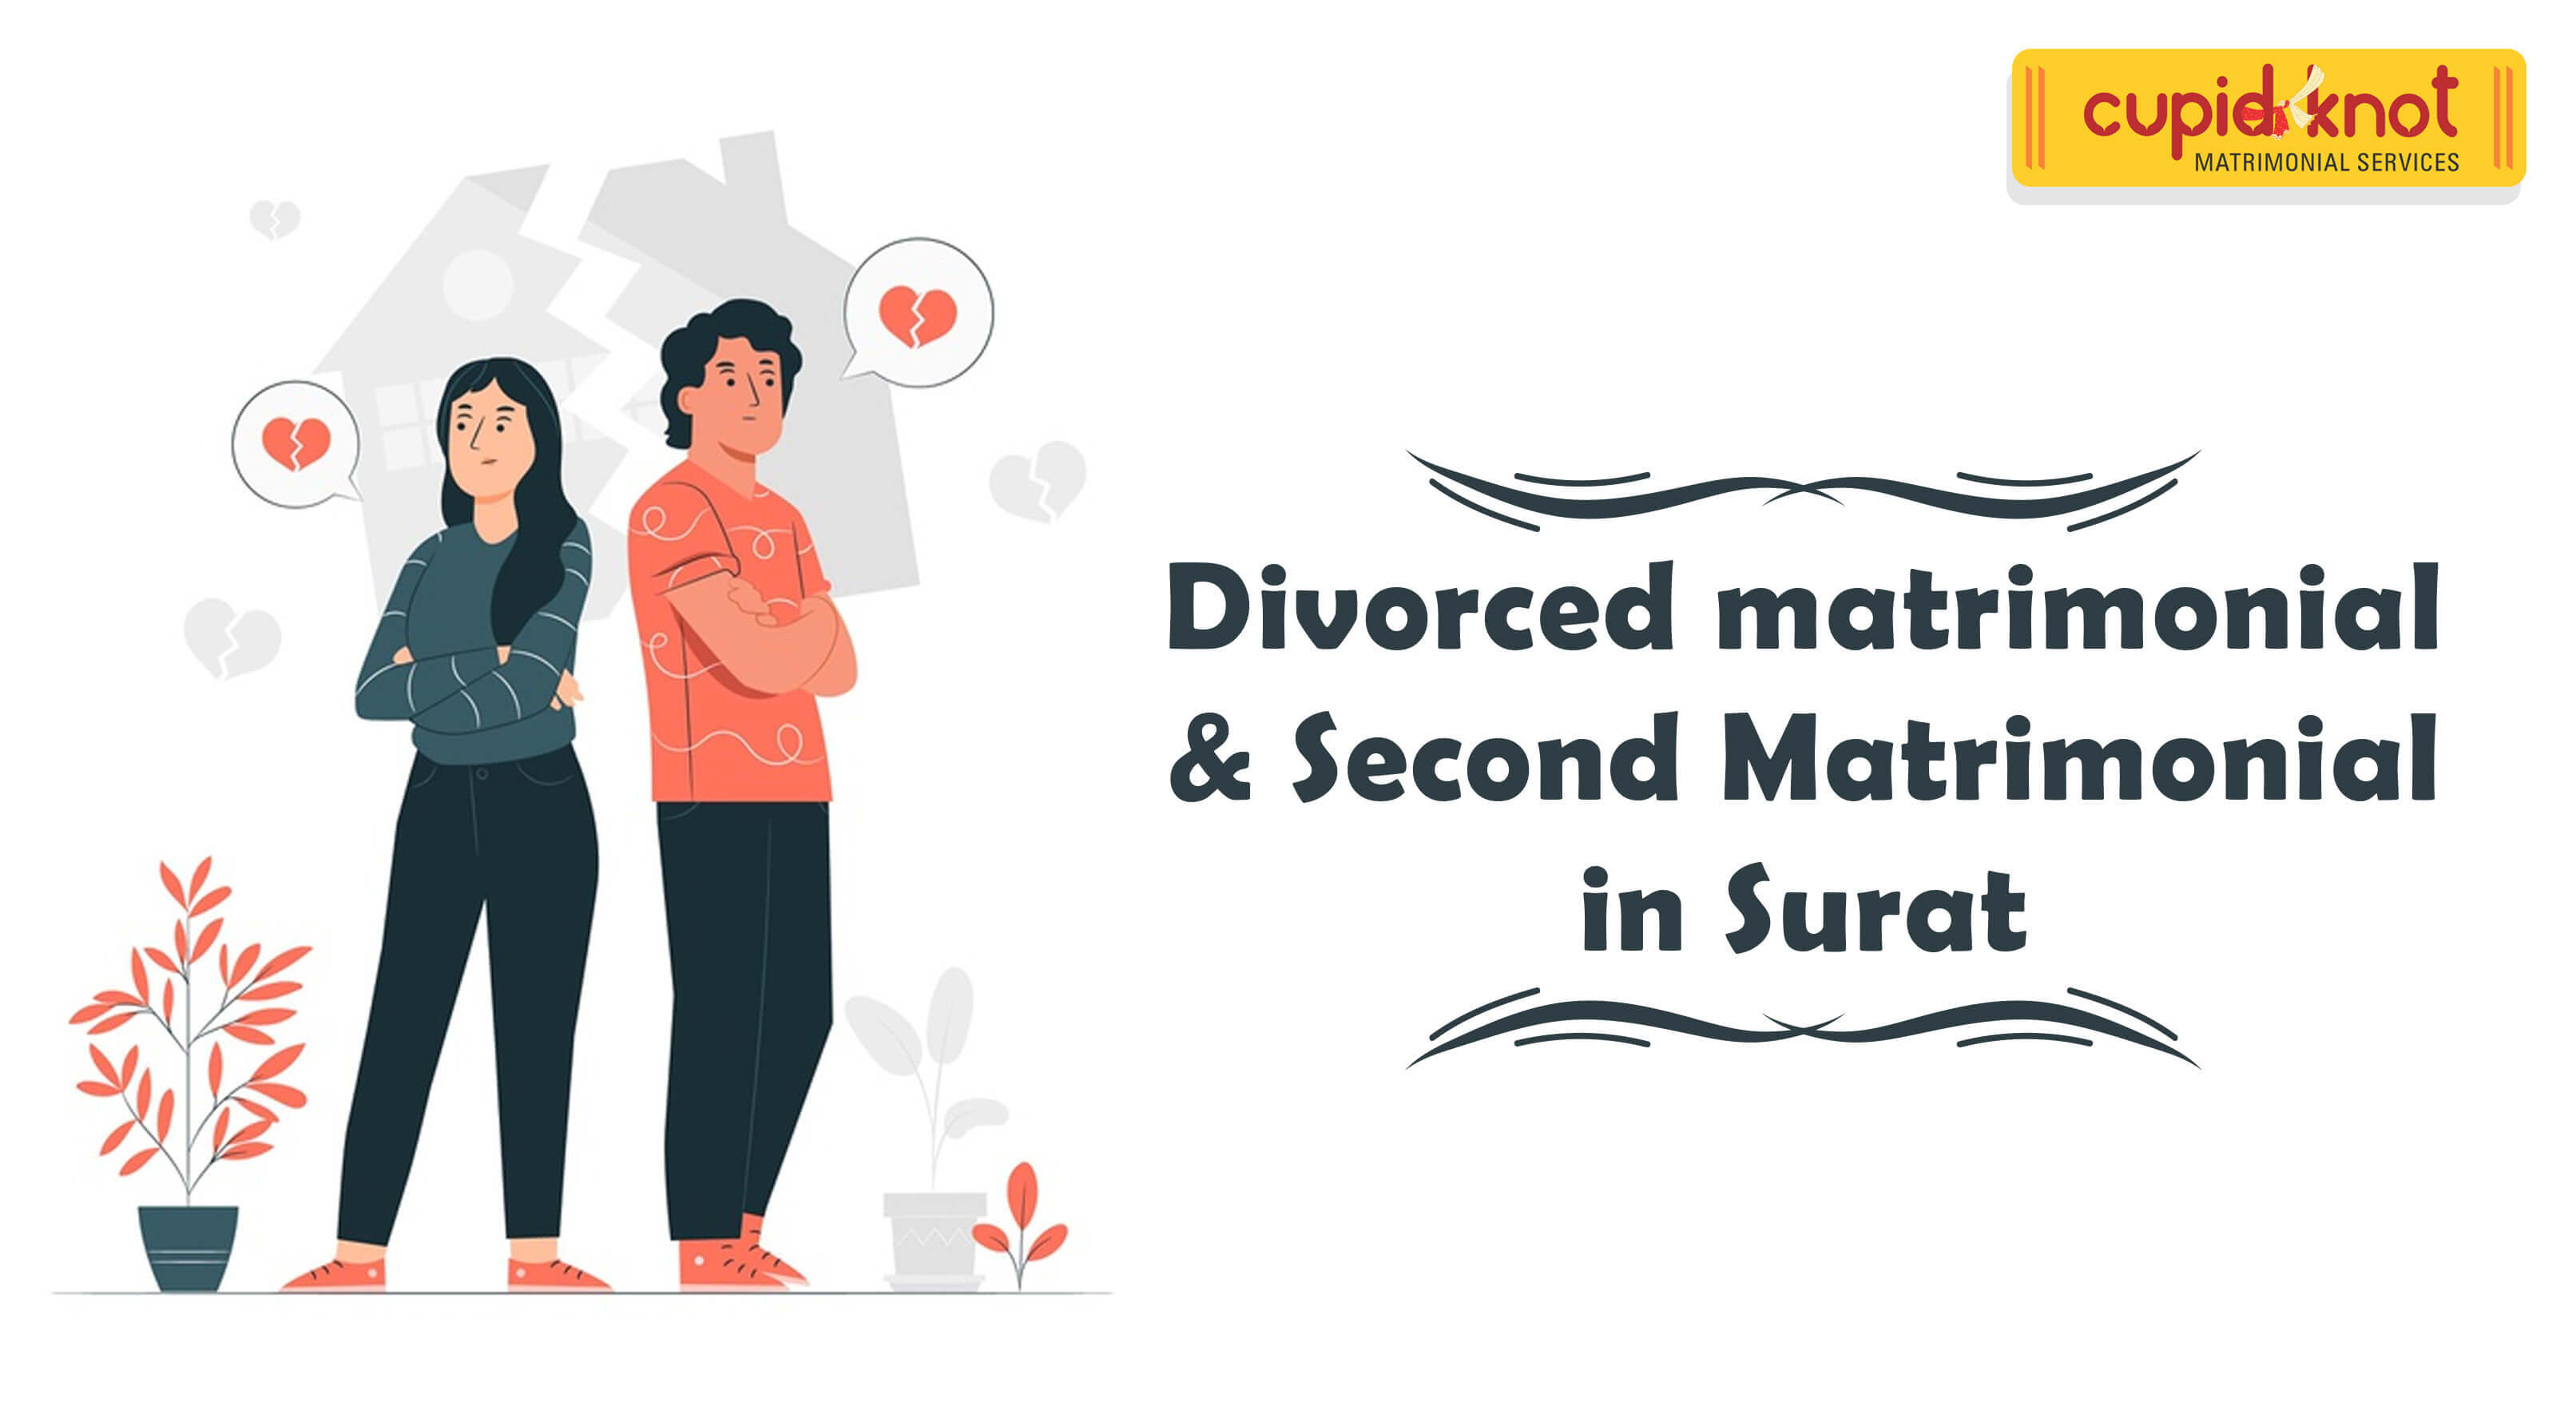 Divorced matrimonial & Second Matrimonial in Surat